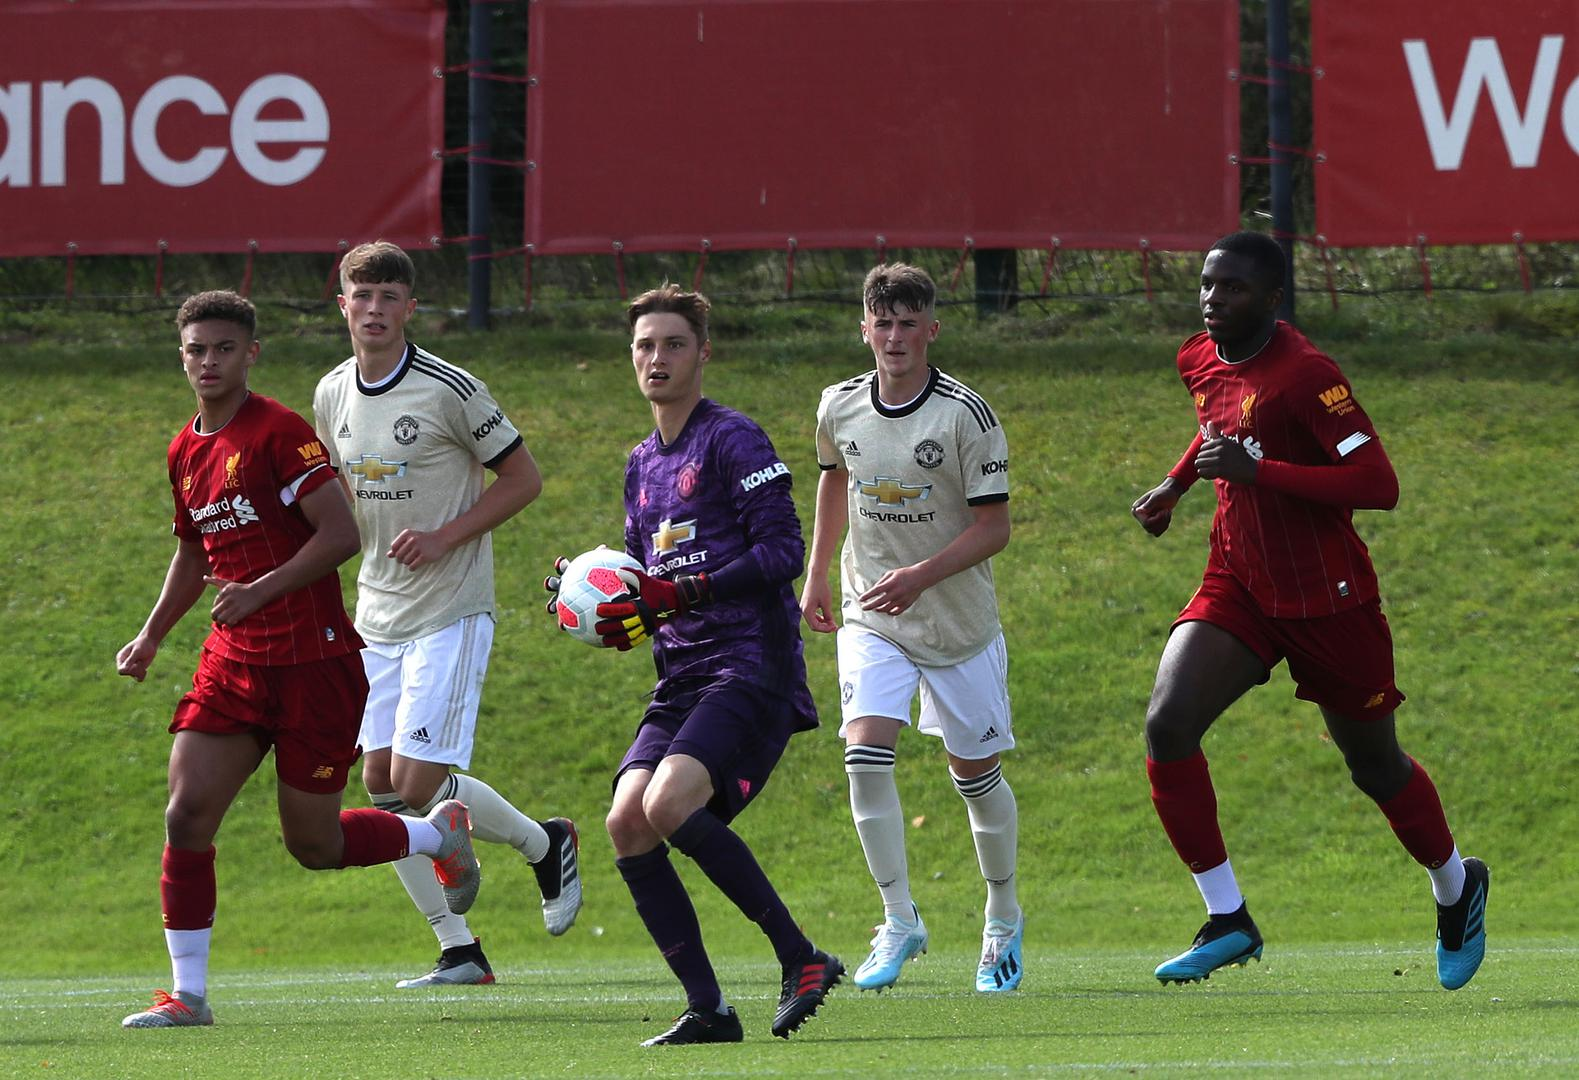 Action from Liverpool Under-18s v Manchester United Under-18s